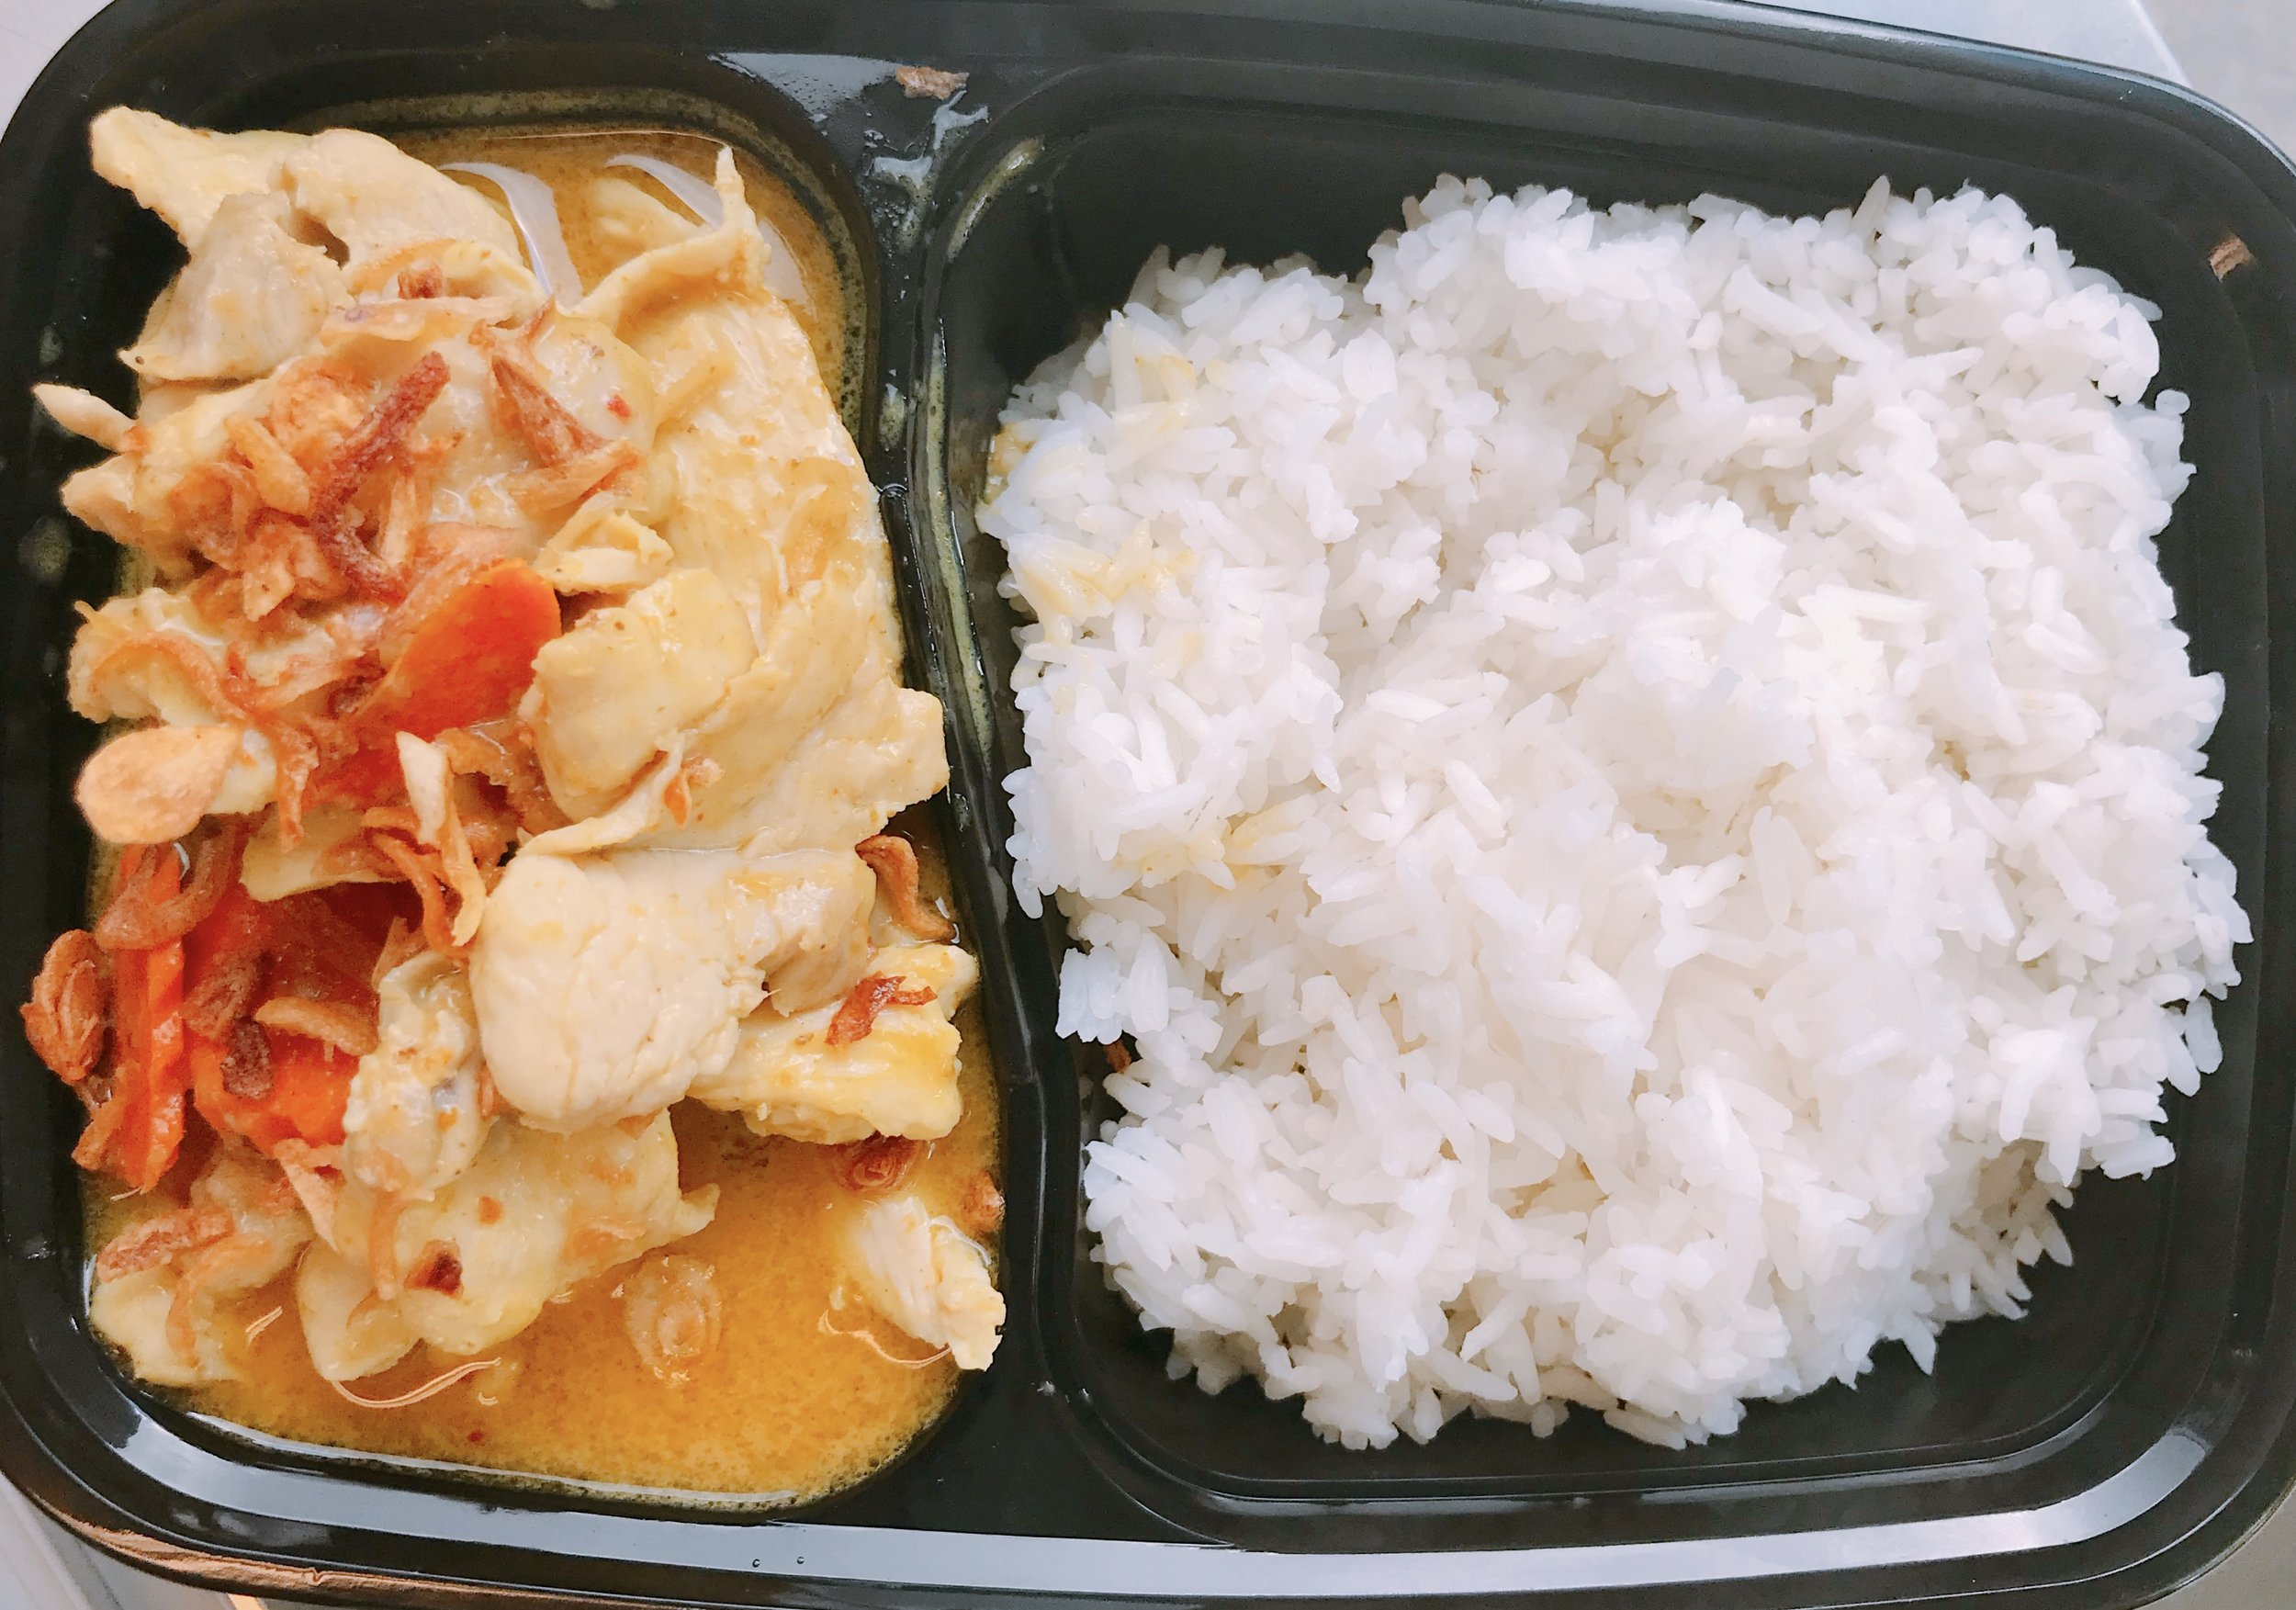 Yellow Curry with chicken or tofu - $10   Ingredients: cumin power, tumeric powder, garlic, coconut milk, tamarind sauce, slow-cooked potatoes, carrots, and onion topped with crispy onion and served with Jasmine rice.